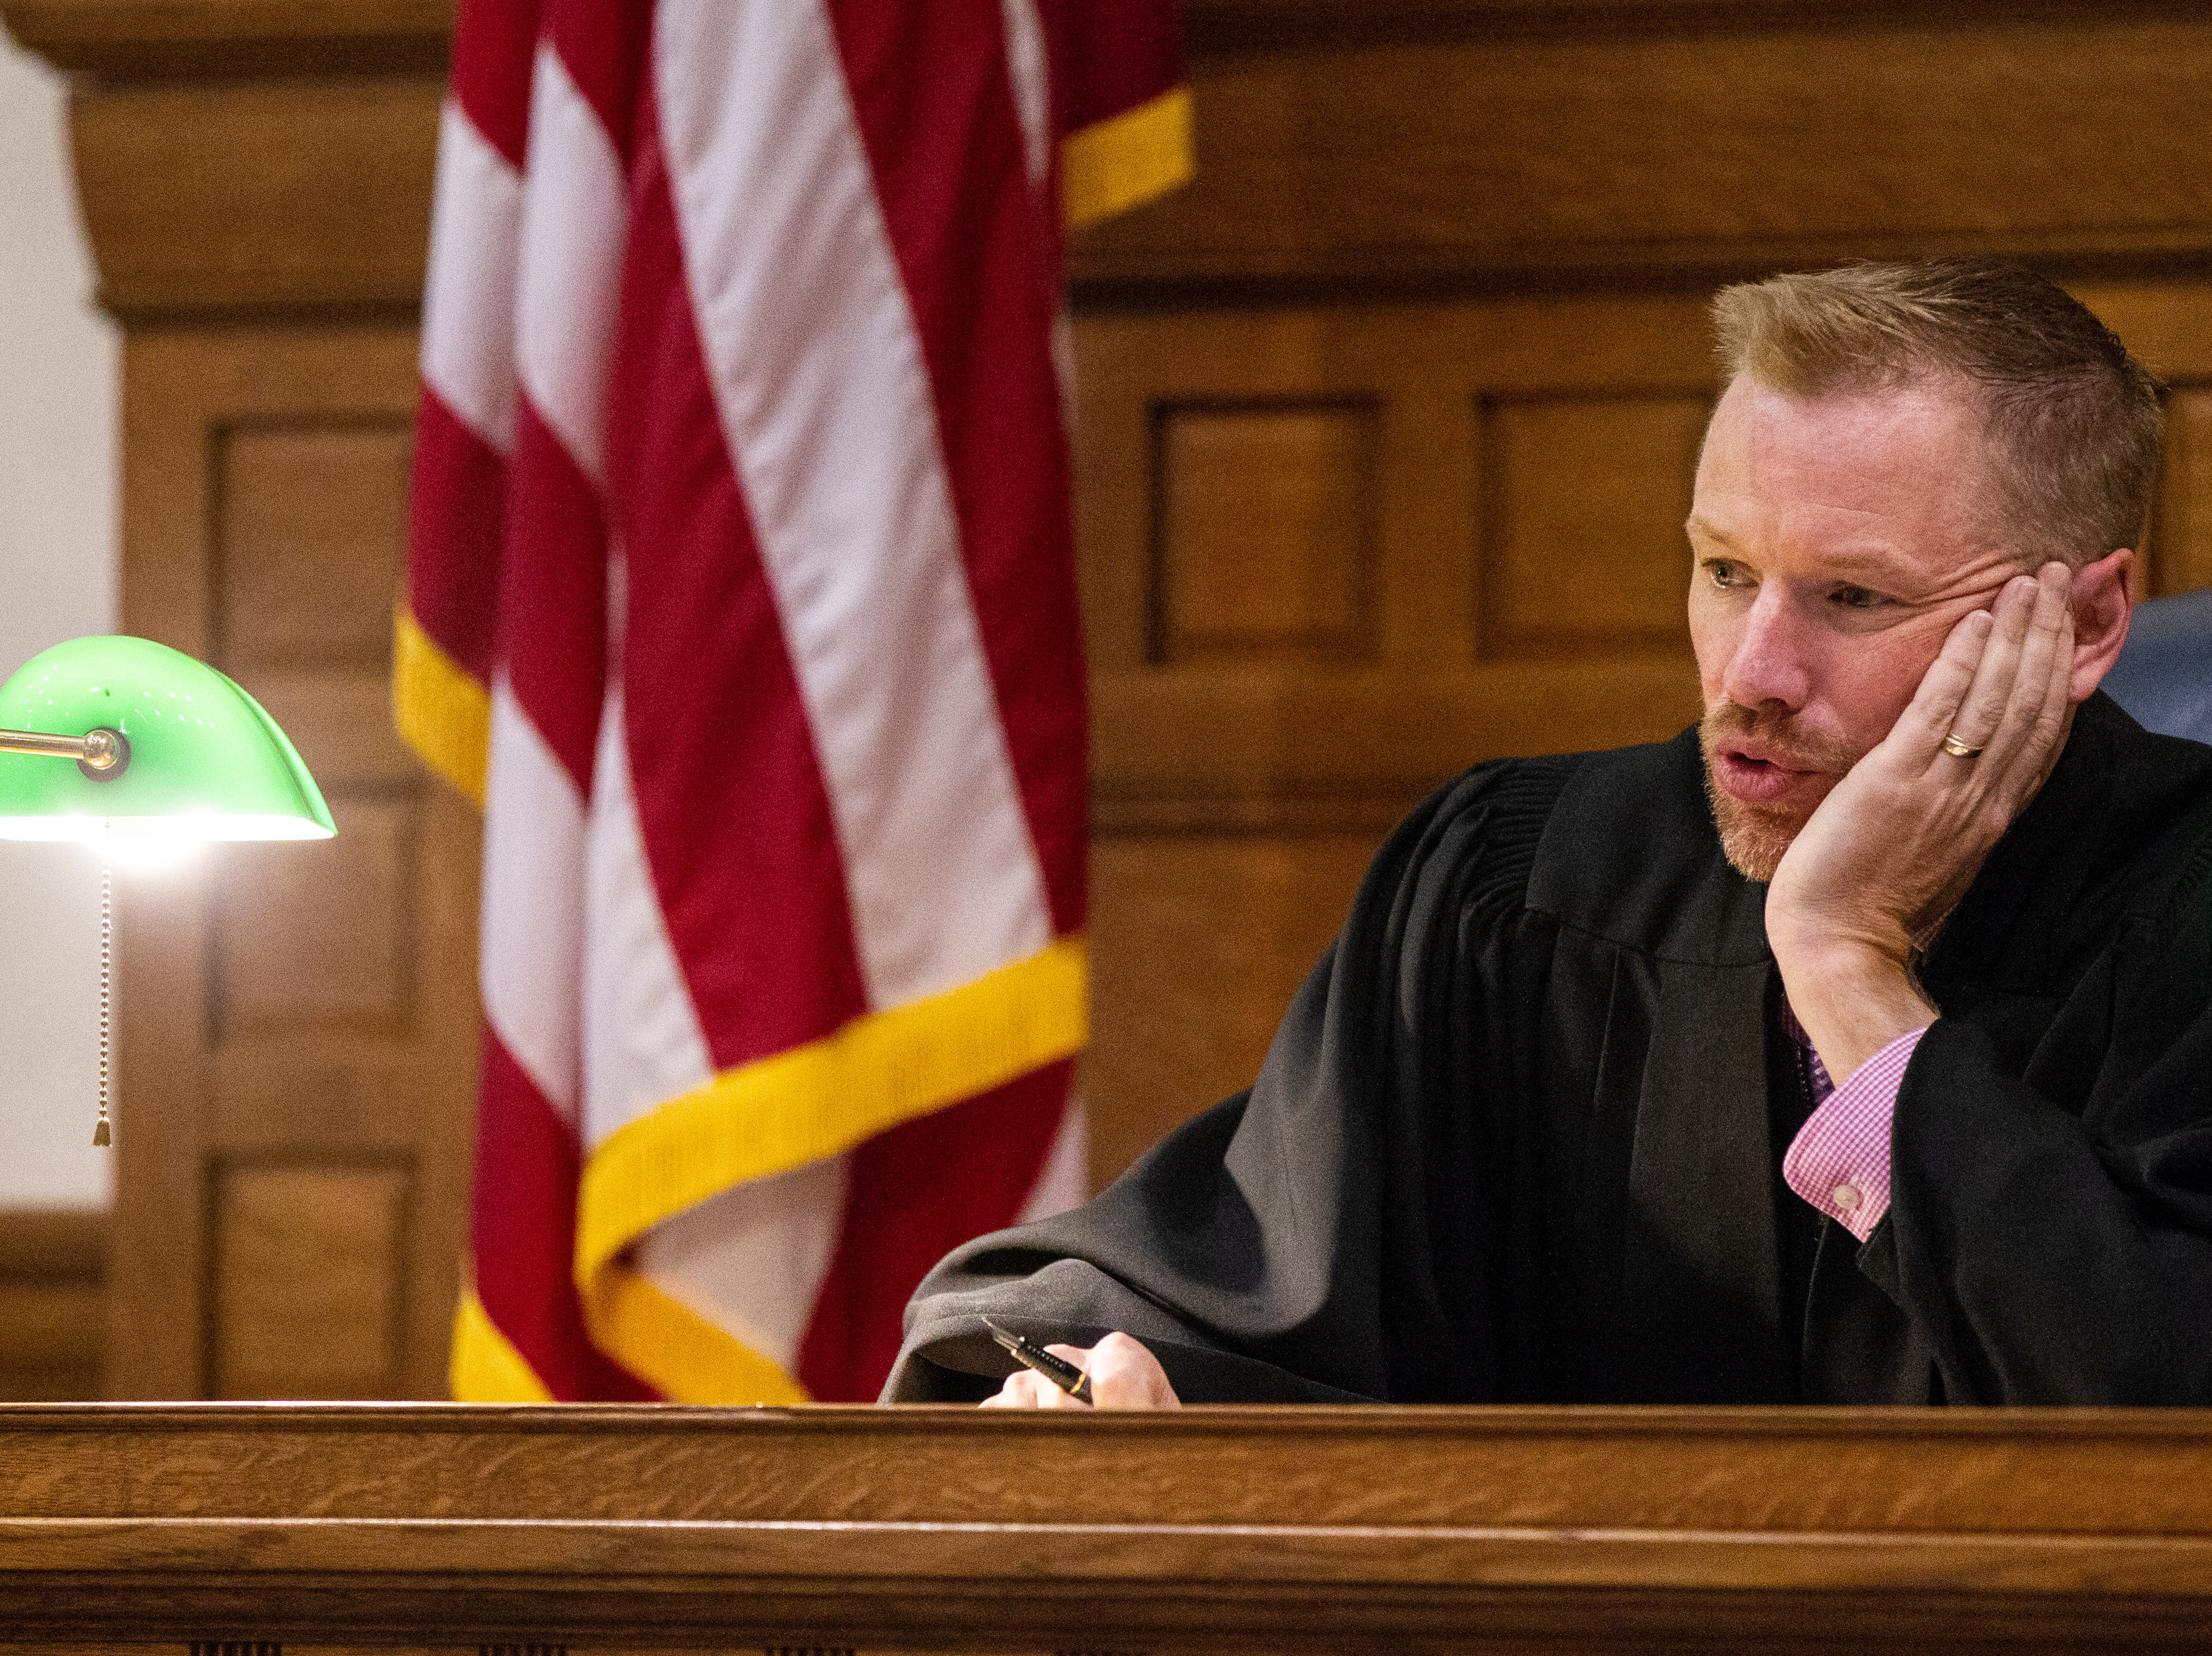 Judge Lars G. Anderson speaks during a pre-trial hearing for Curtis Jones on Wednesday, Sept. 26, 2018, at the Johnson County Courthouse in Iowa City.